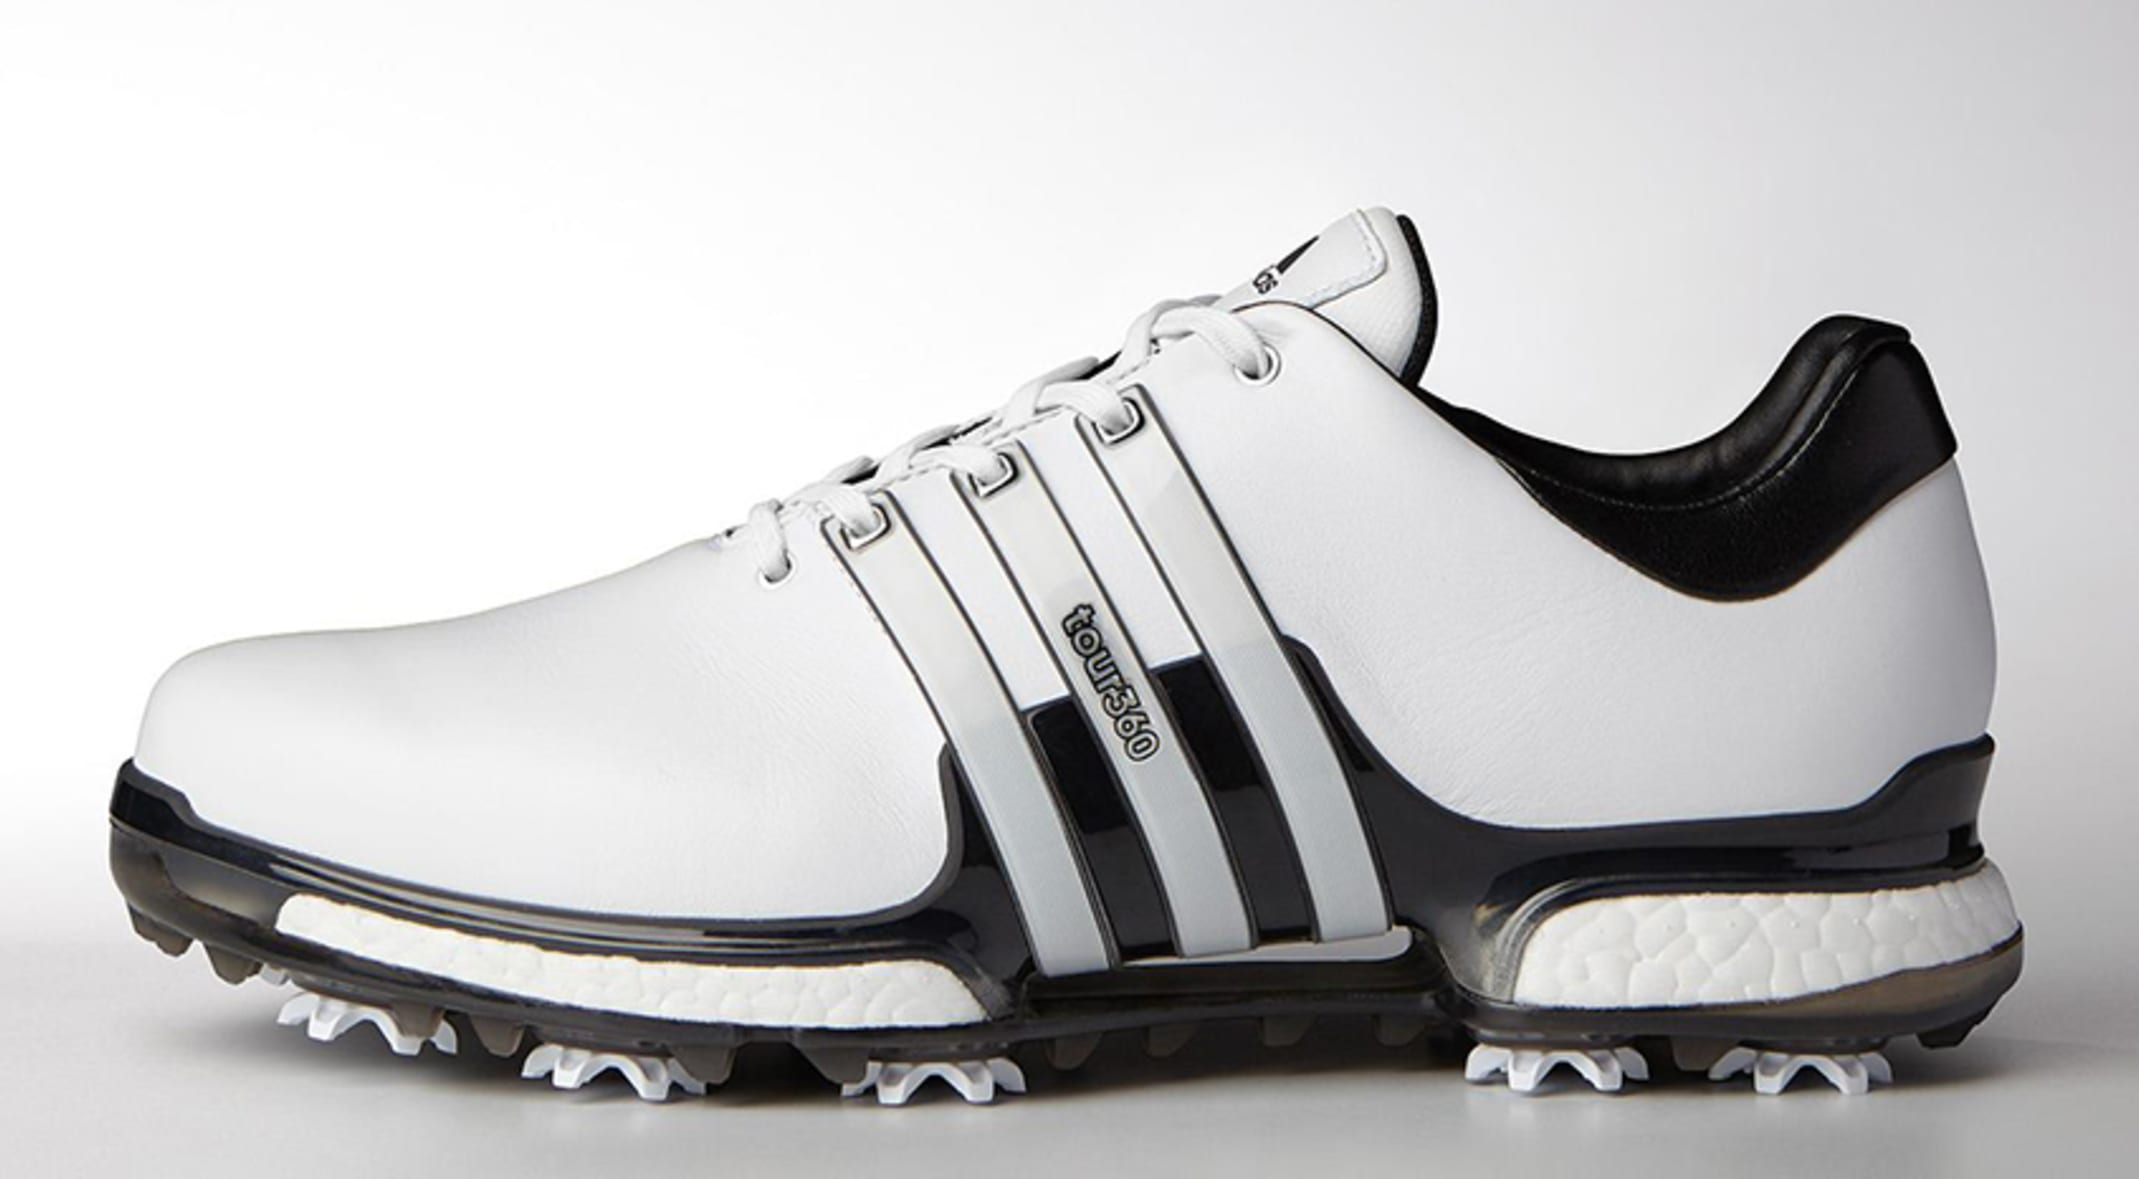 024f84eb Dustin Johnson wore the adidas TOUR360 shoes during his FedExCup Playoff  victory at THE NORTHERN TRUST